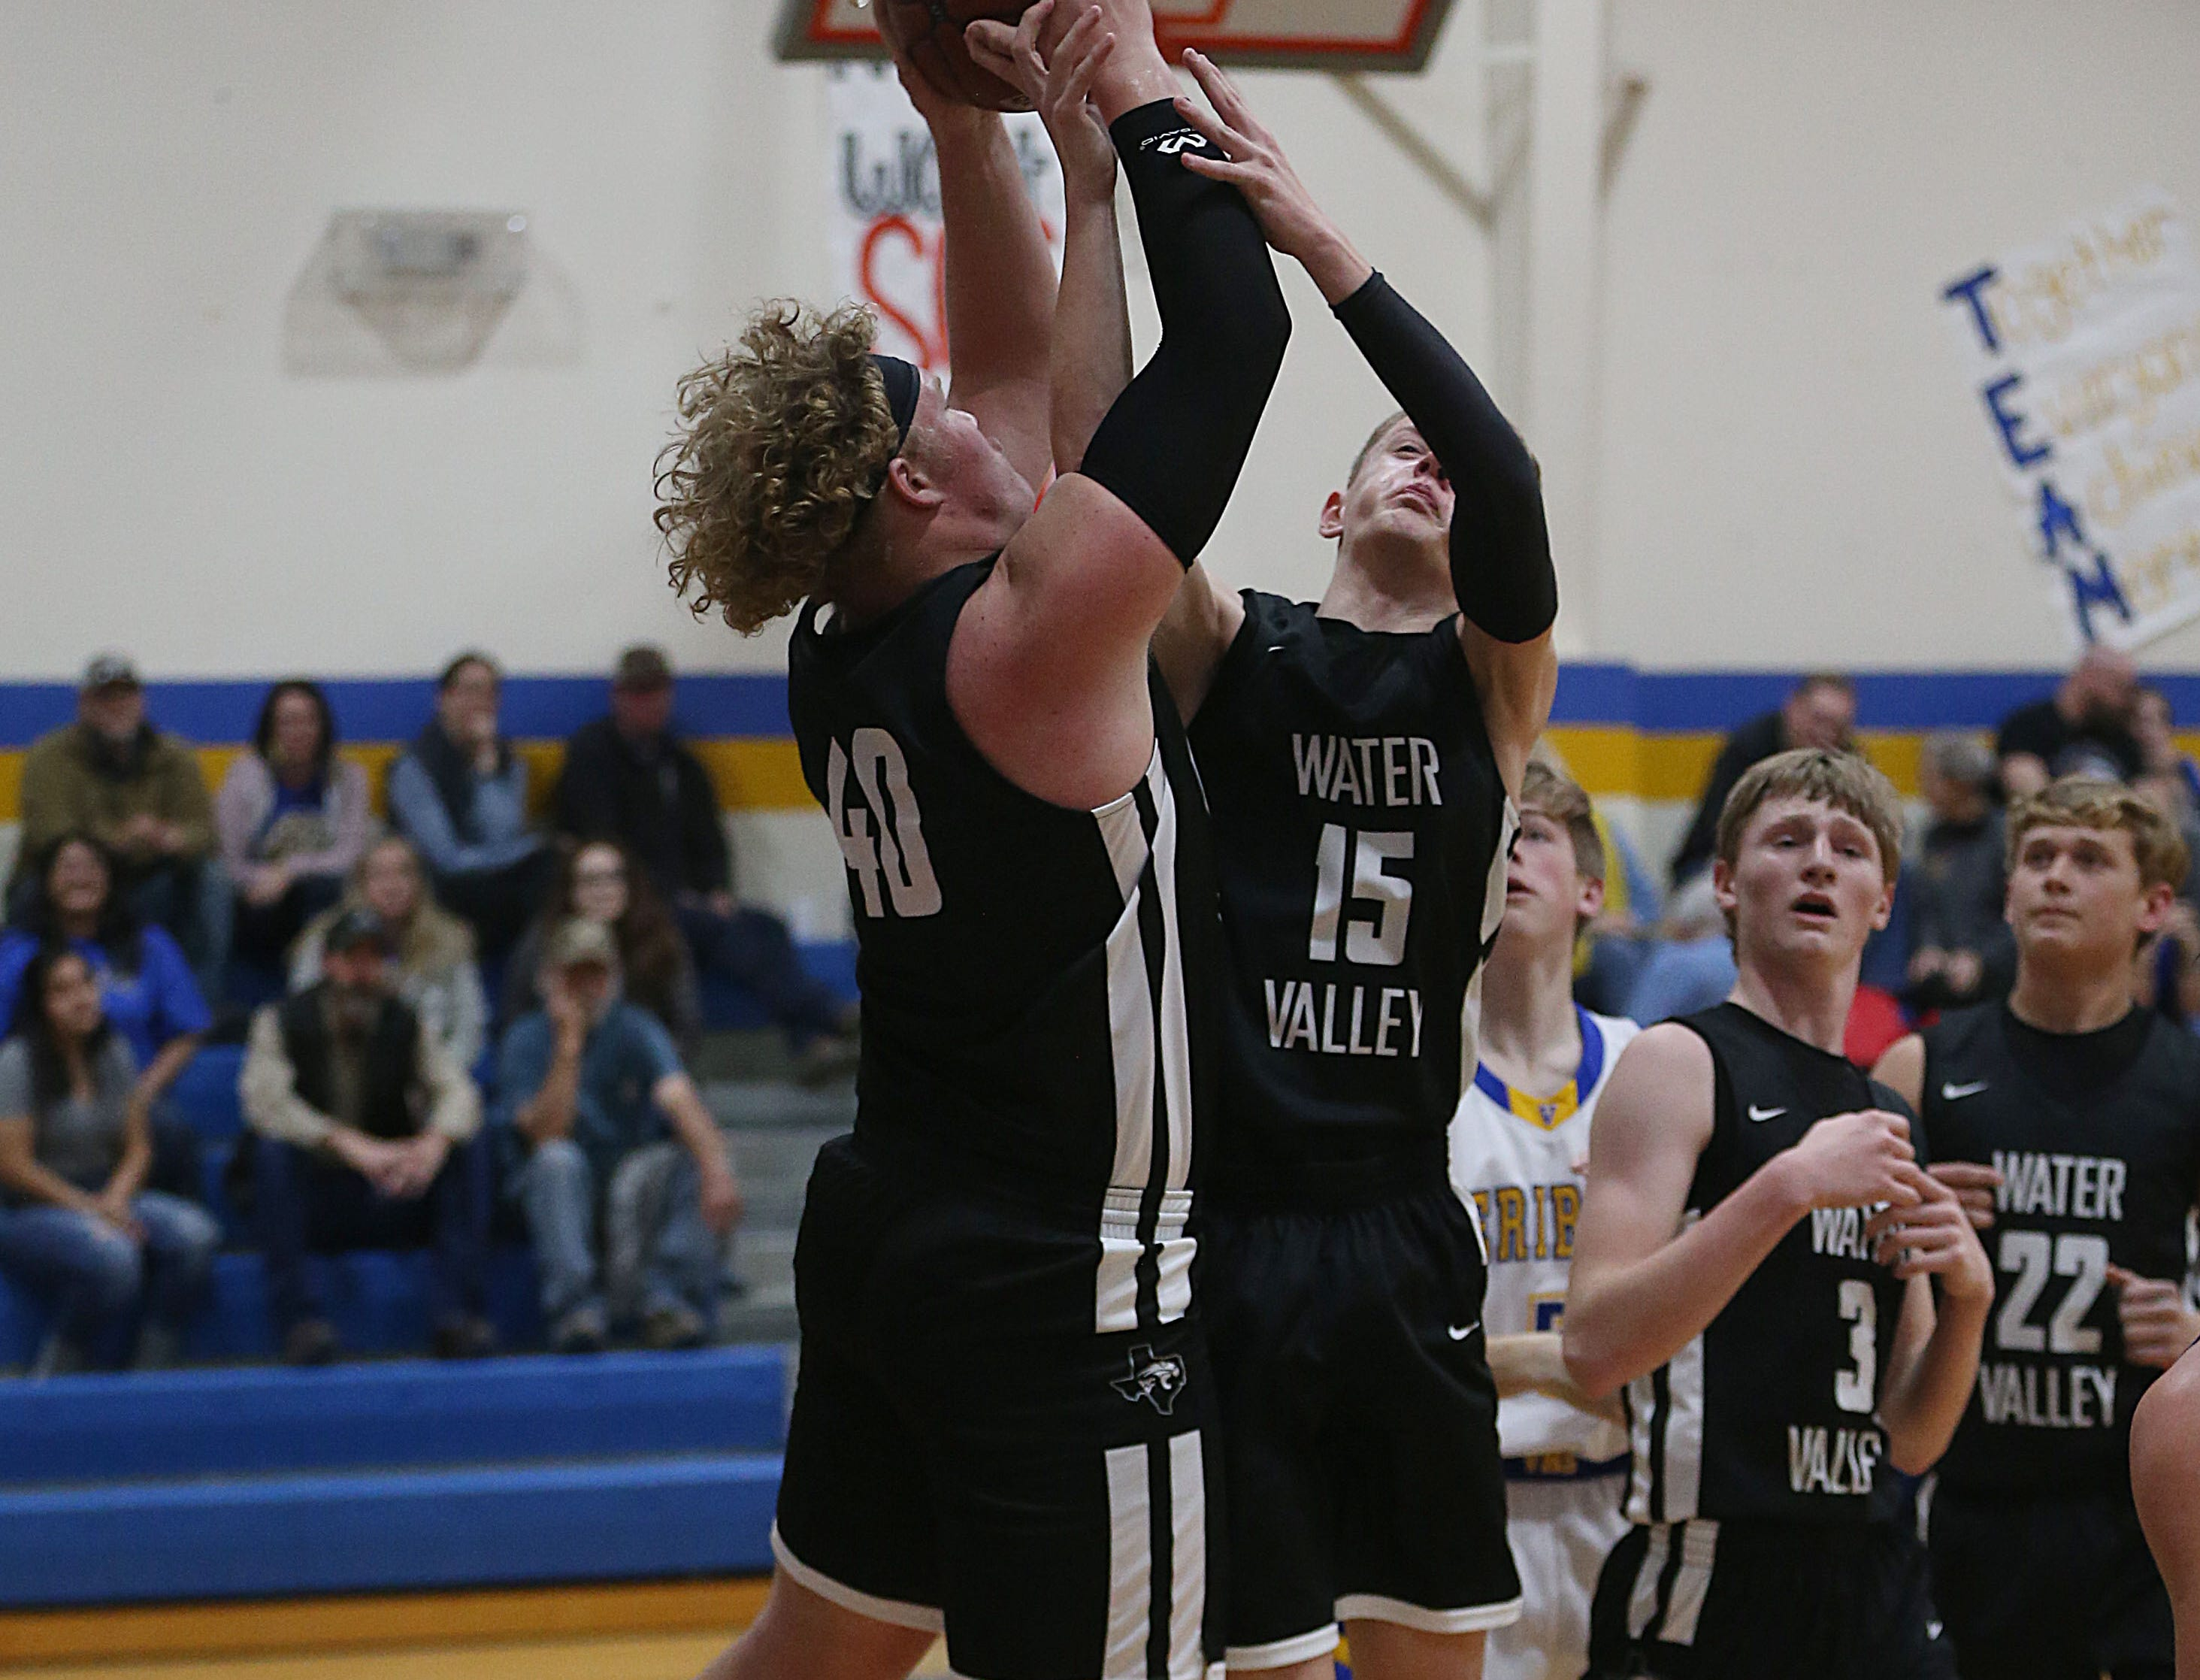 Water Valley players regain control over the ball Tuesday, Jan. 8, 2019 during the game against Veribest.